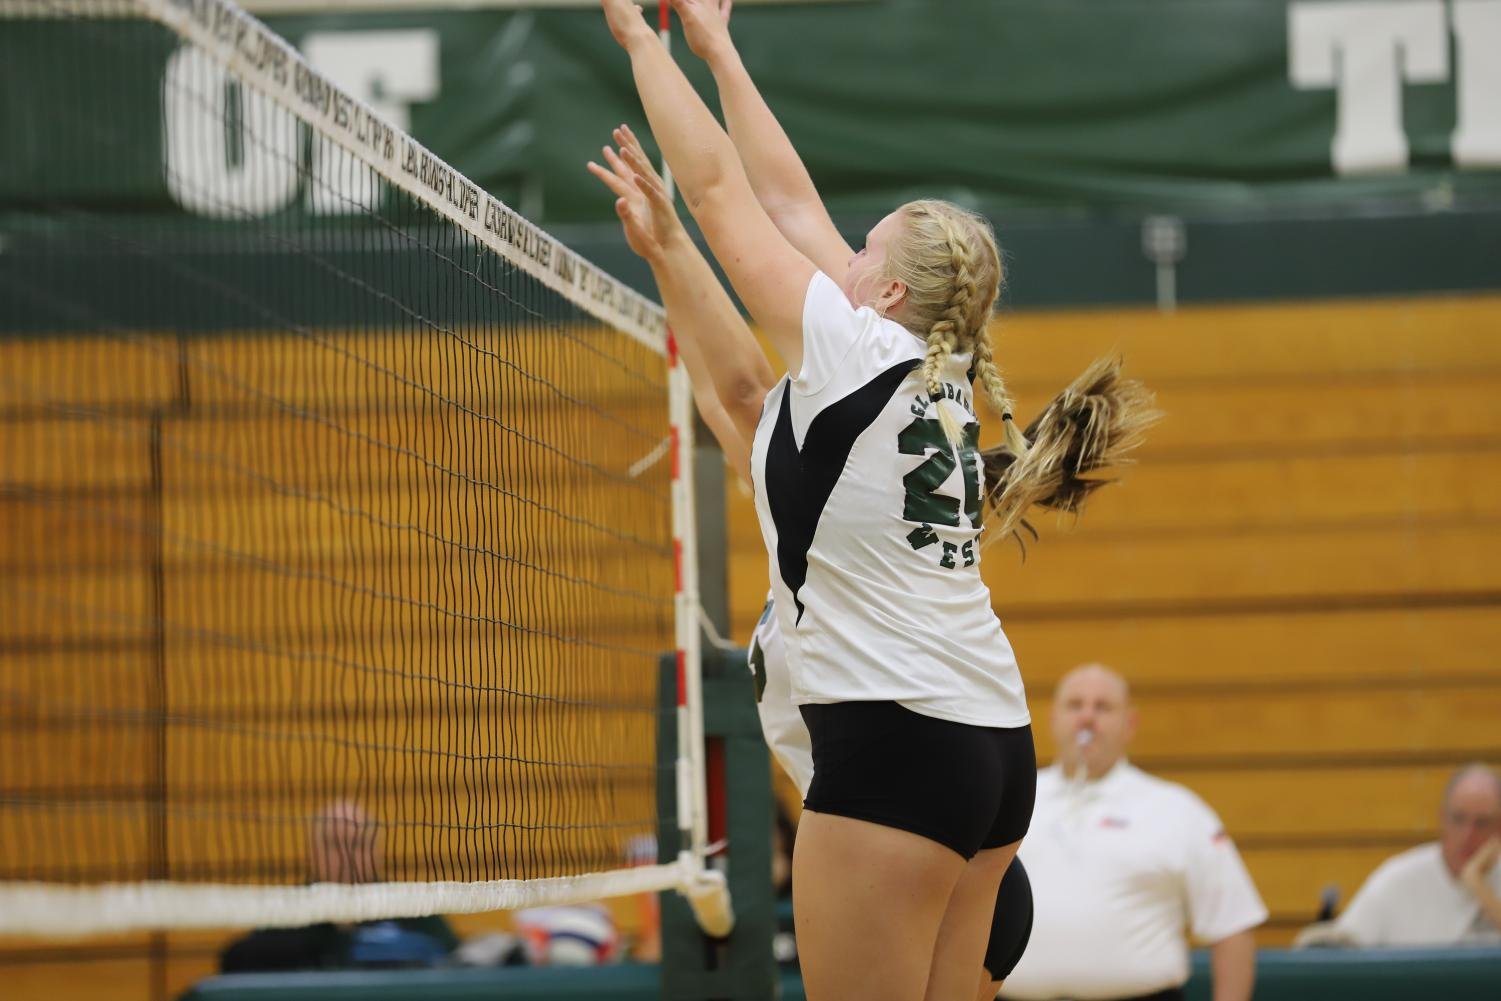 Middle+Hitter+Emory+Kennebeck+%28sophomore%29+jumps+for+a+block.